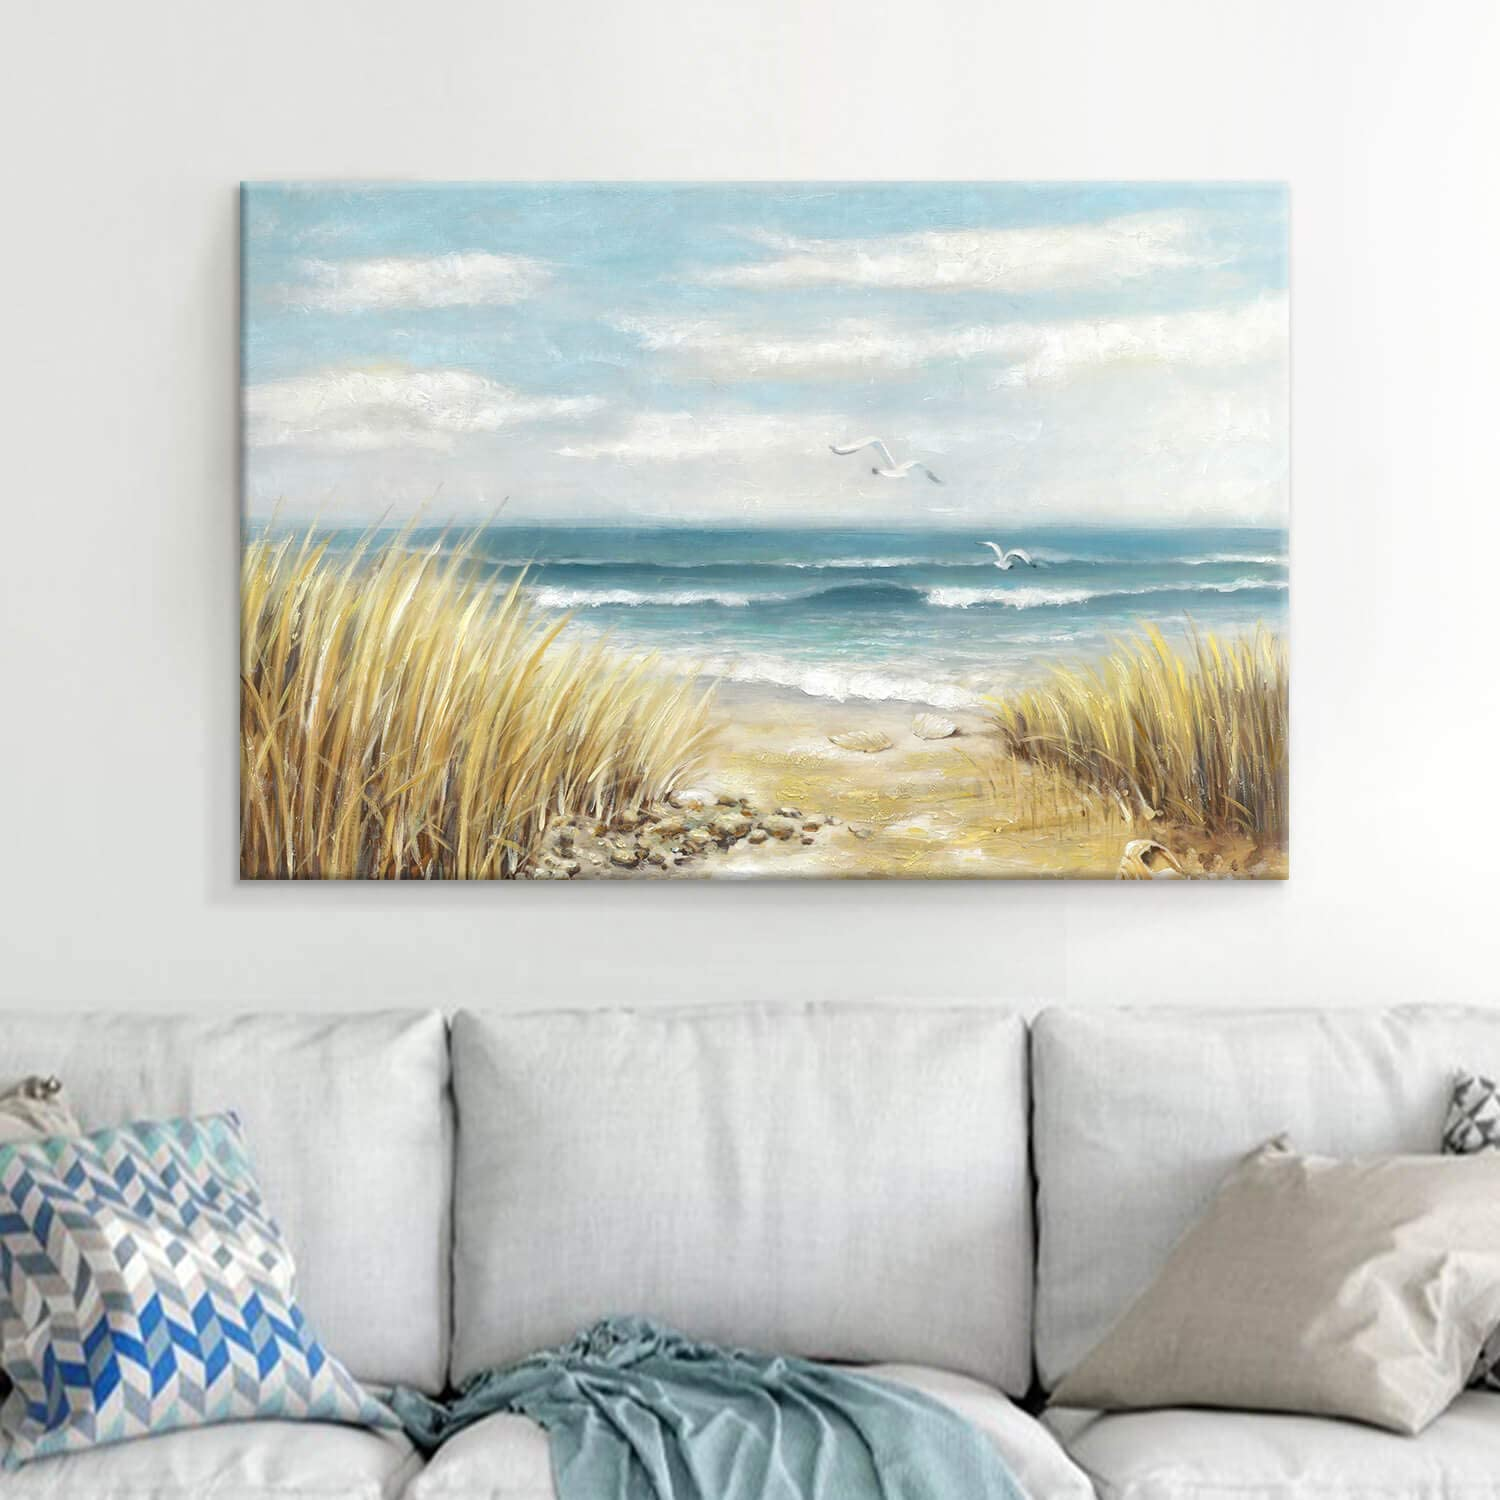 Art /& Collectible Ocean Painting Painting on Stretched Canvas 1.5 deep Title: West Shore Original Painting made to Order Wall Decor